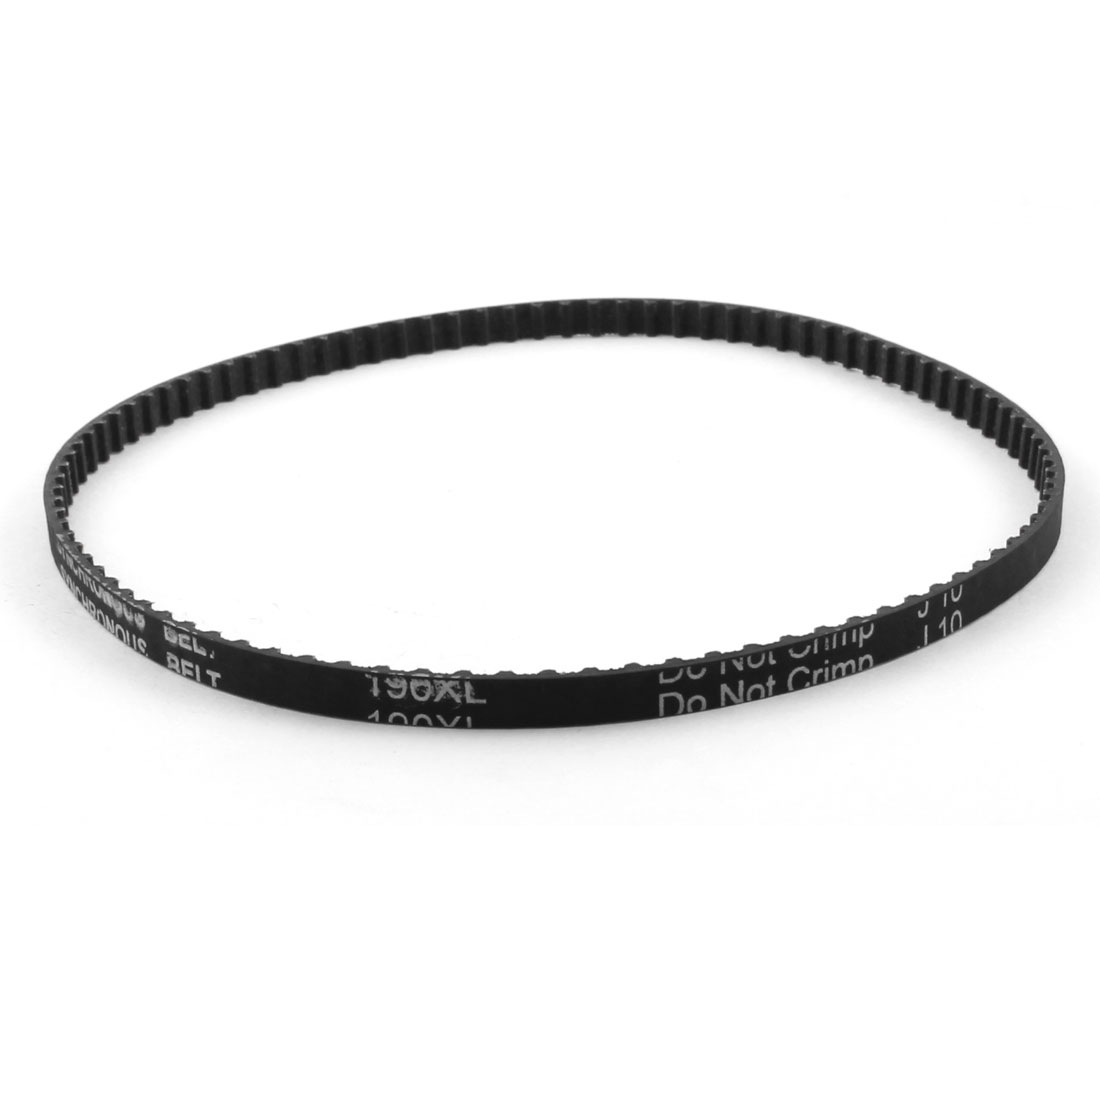 "XL-190 19"" Girth 5.08mm Pitch 95-Teeth 6.4mm Width Black Rubber Single Side Synchronous Timing Belt"